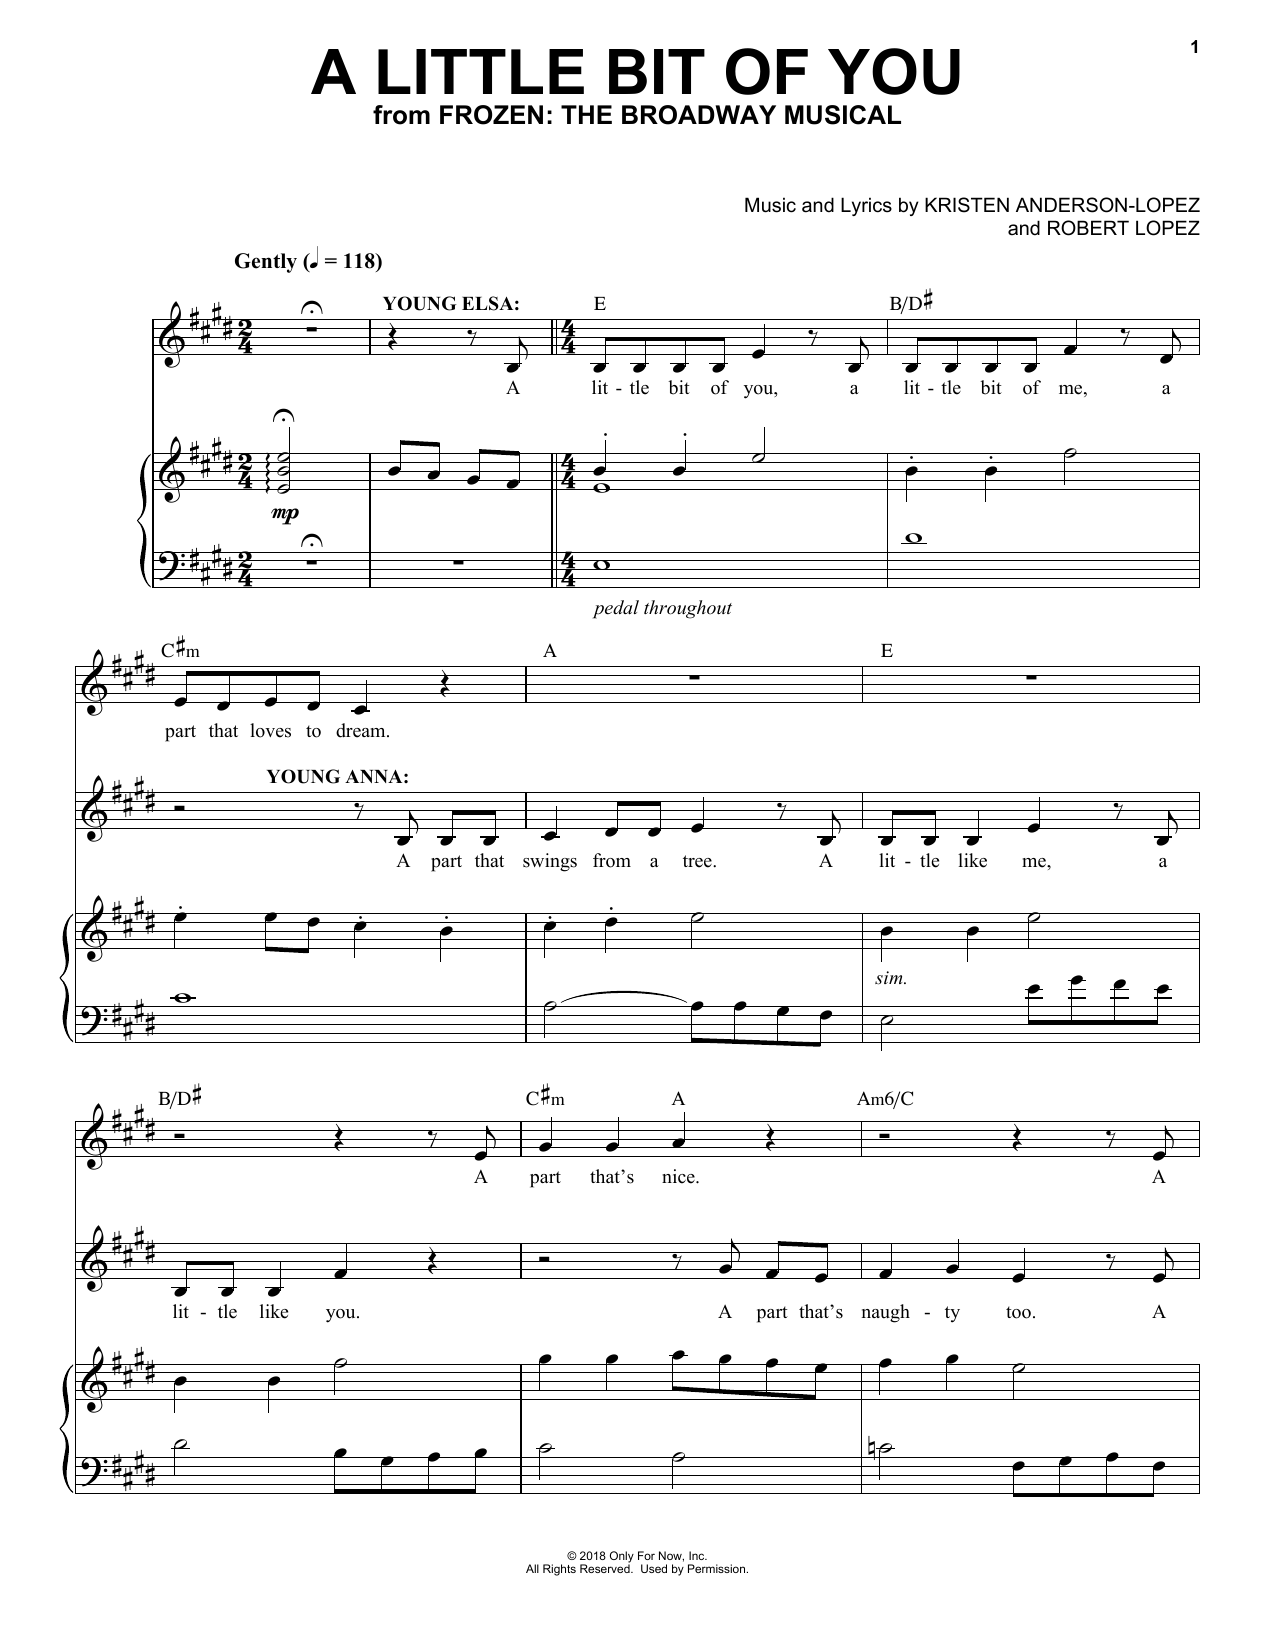 Kristen Anderson-Lopez & Robert Lopez A Little Bit Of You (from Frozen: The Broadway Musical) sheet music notes and chords. Download Printable PDF.